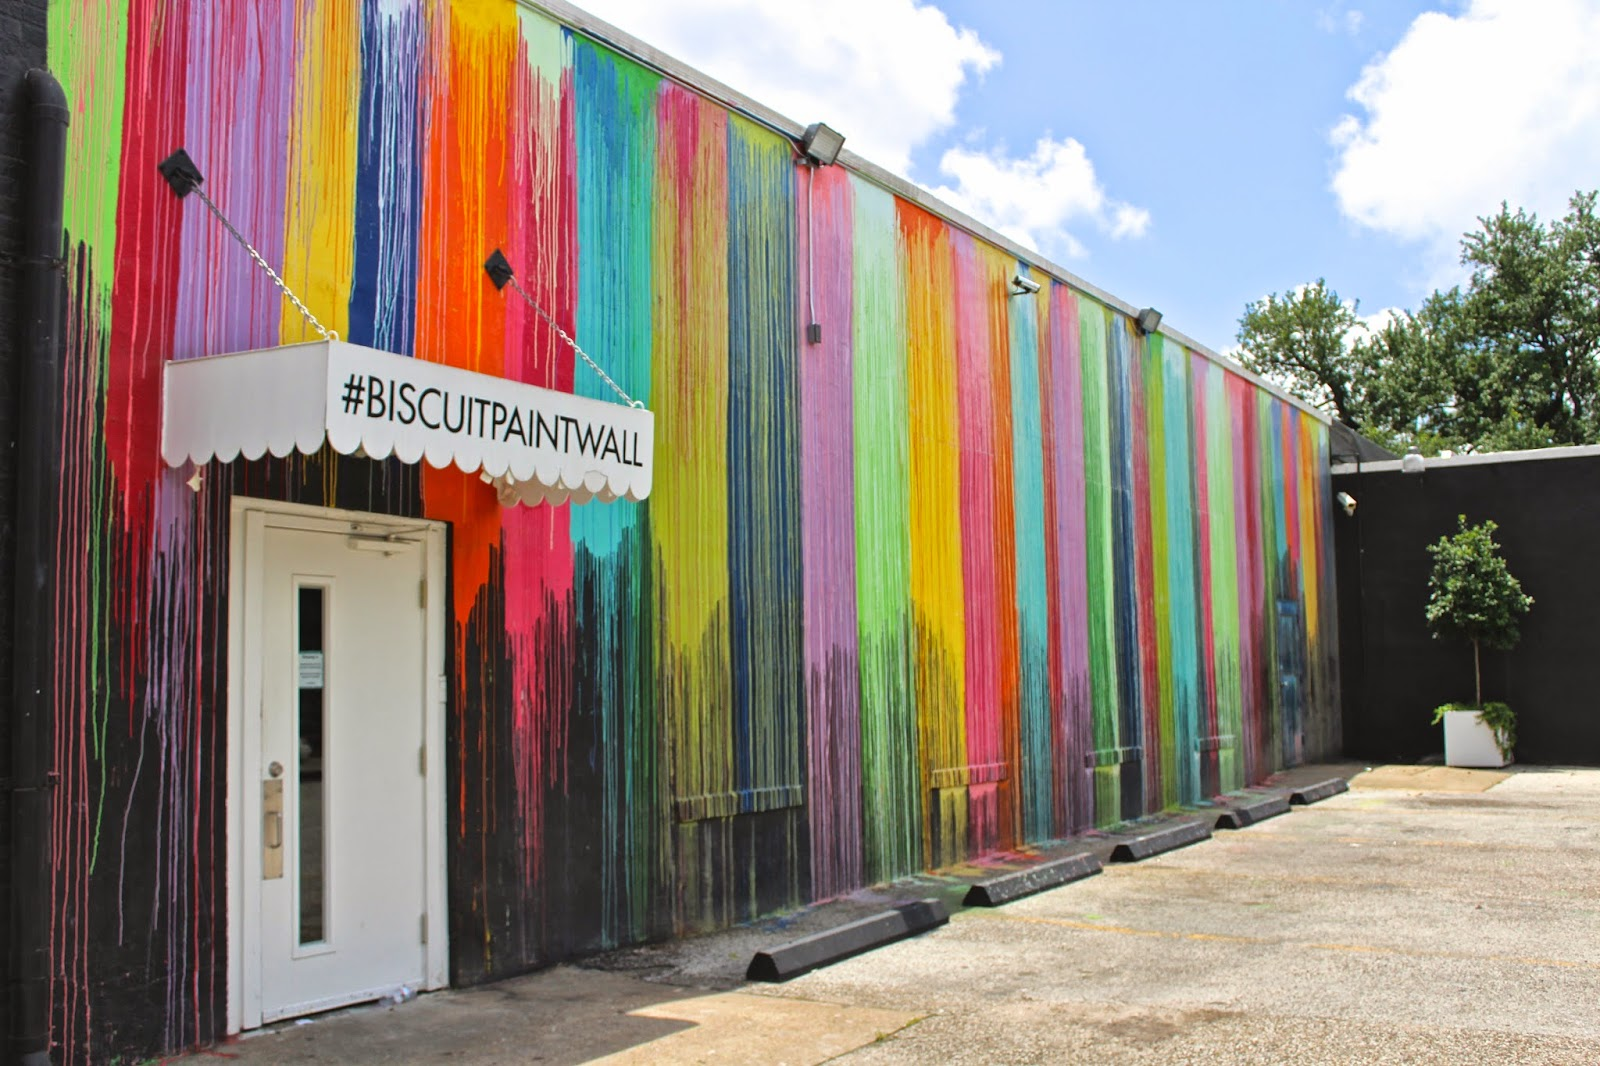 This My Friends, Is Known As The #biscuitpaintwall And Is Connected To An  Adorable Little Shop Called Biscuit Home In The Montrose Area Of Houston.